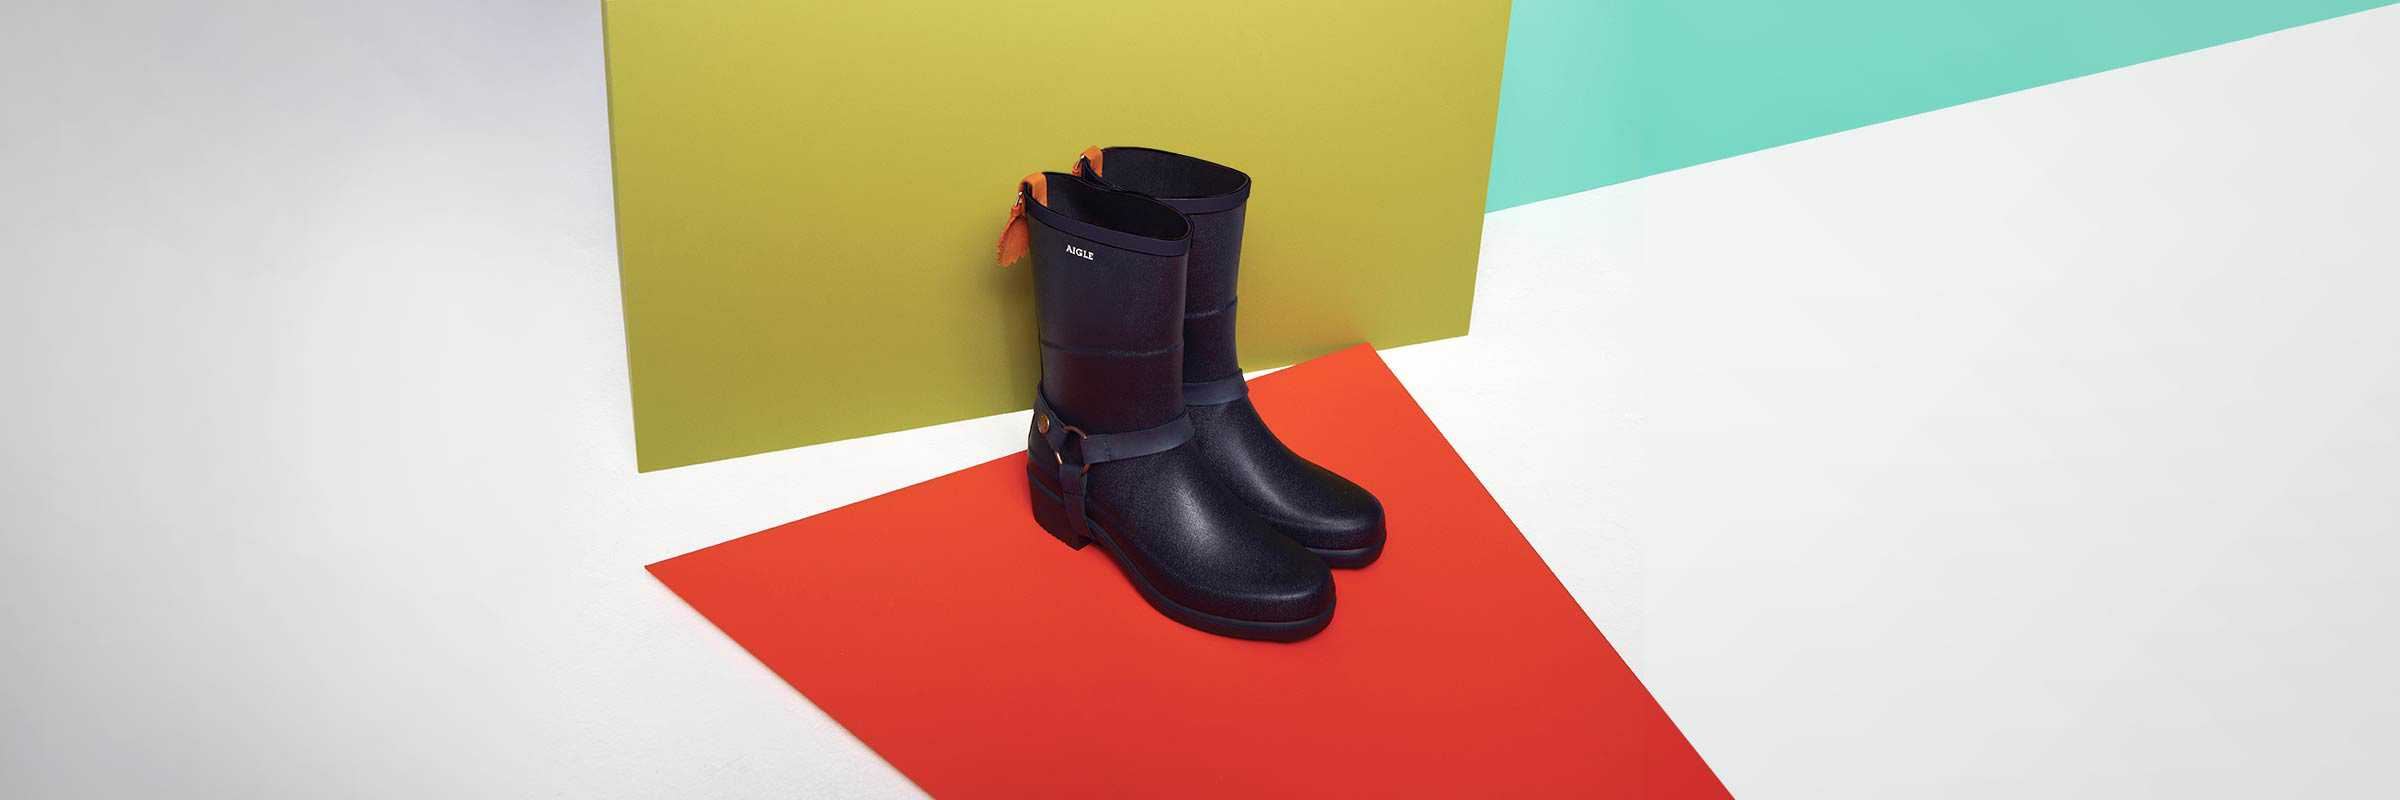 Aigle, Blundston, Bogs, Hunter. Best Rain Boots for Women this Spring